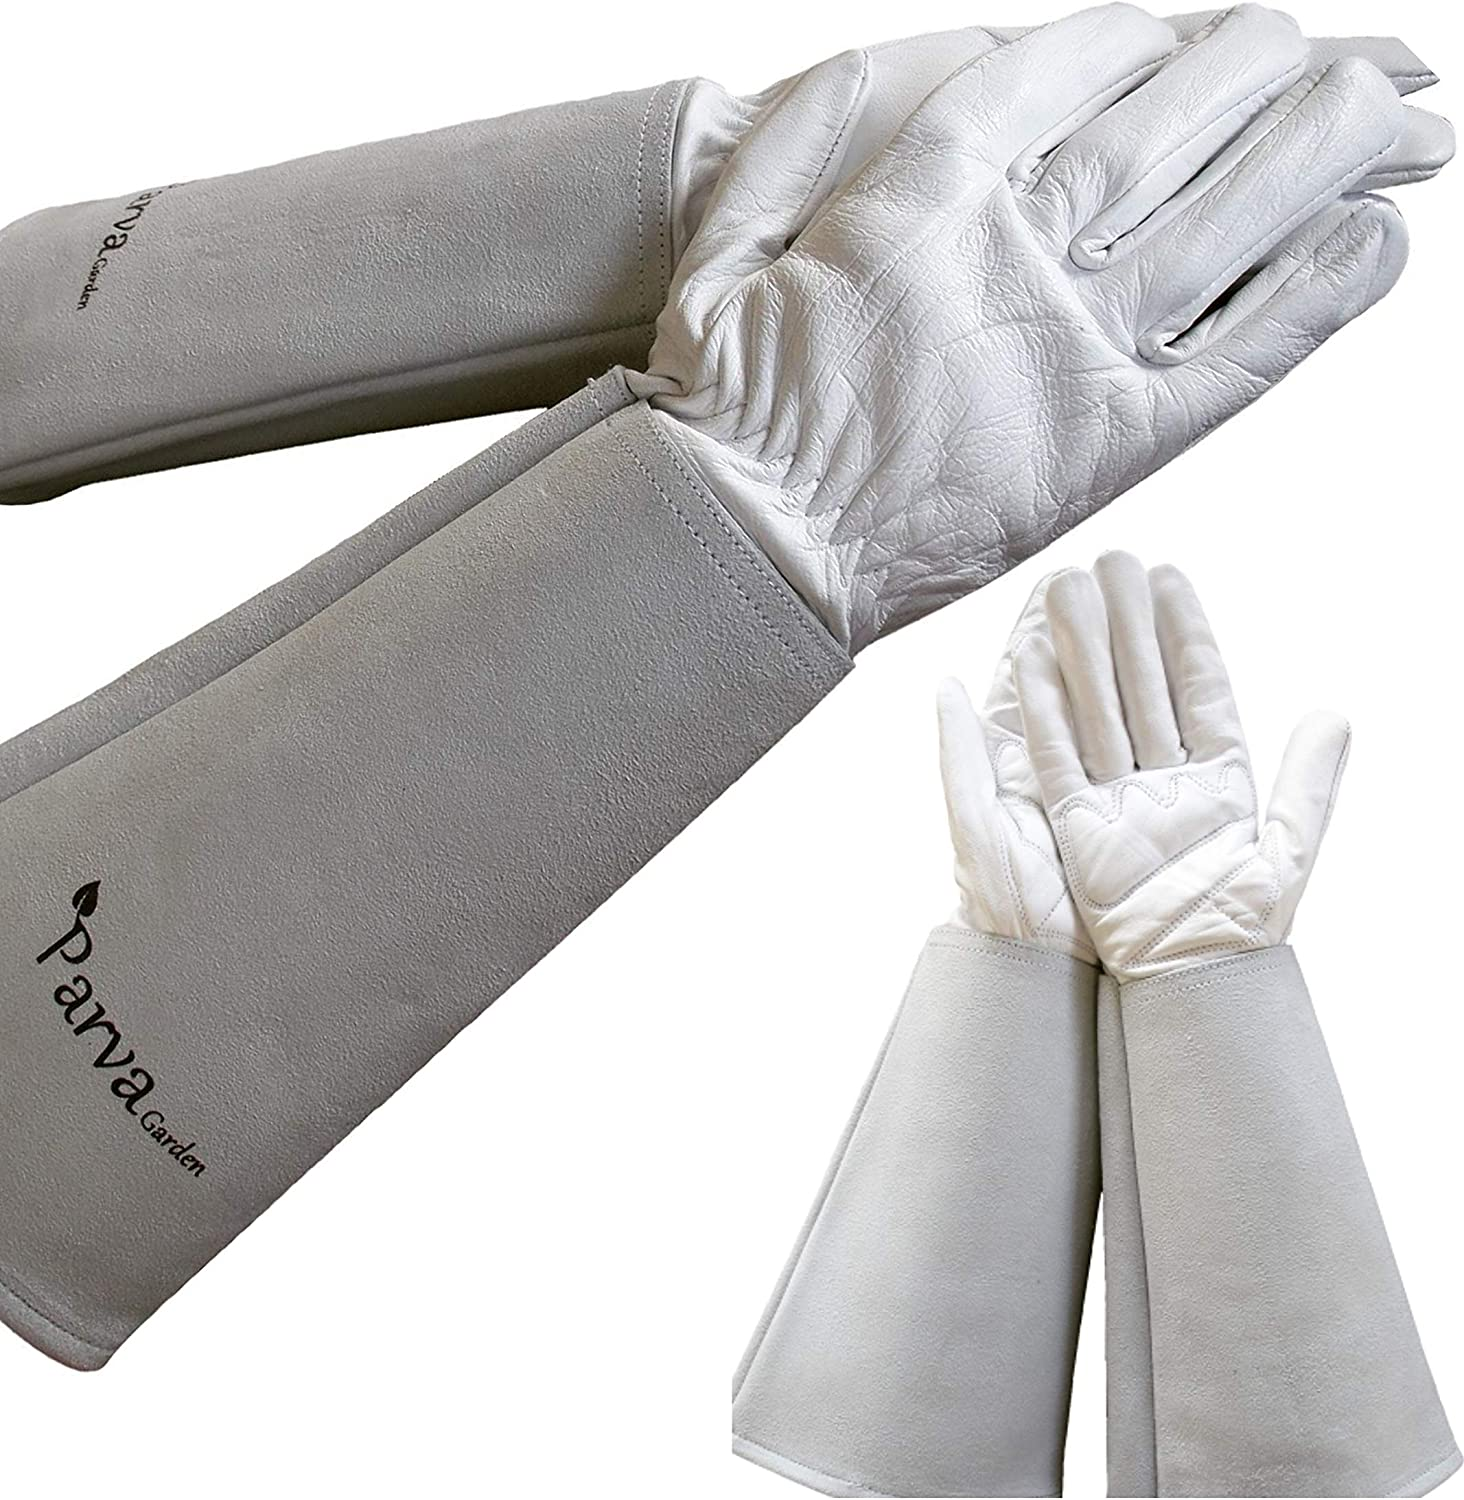 Elbow Length Gardening Gloves, Rose Pruning Gloves, Leather Gloves with Canvas Gauntlet Protects Forearms for Men and Women Gardening Gloves (Medium Neutral)